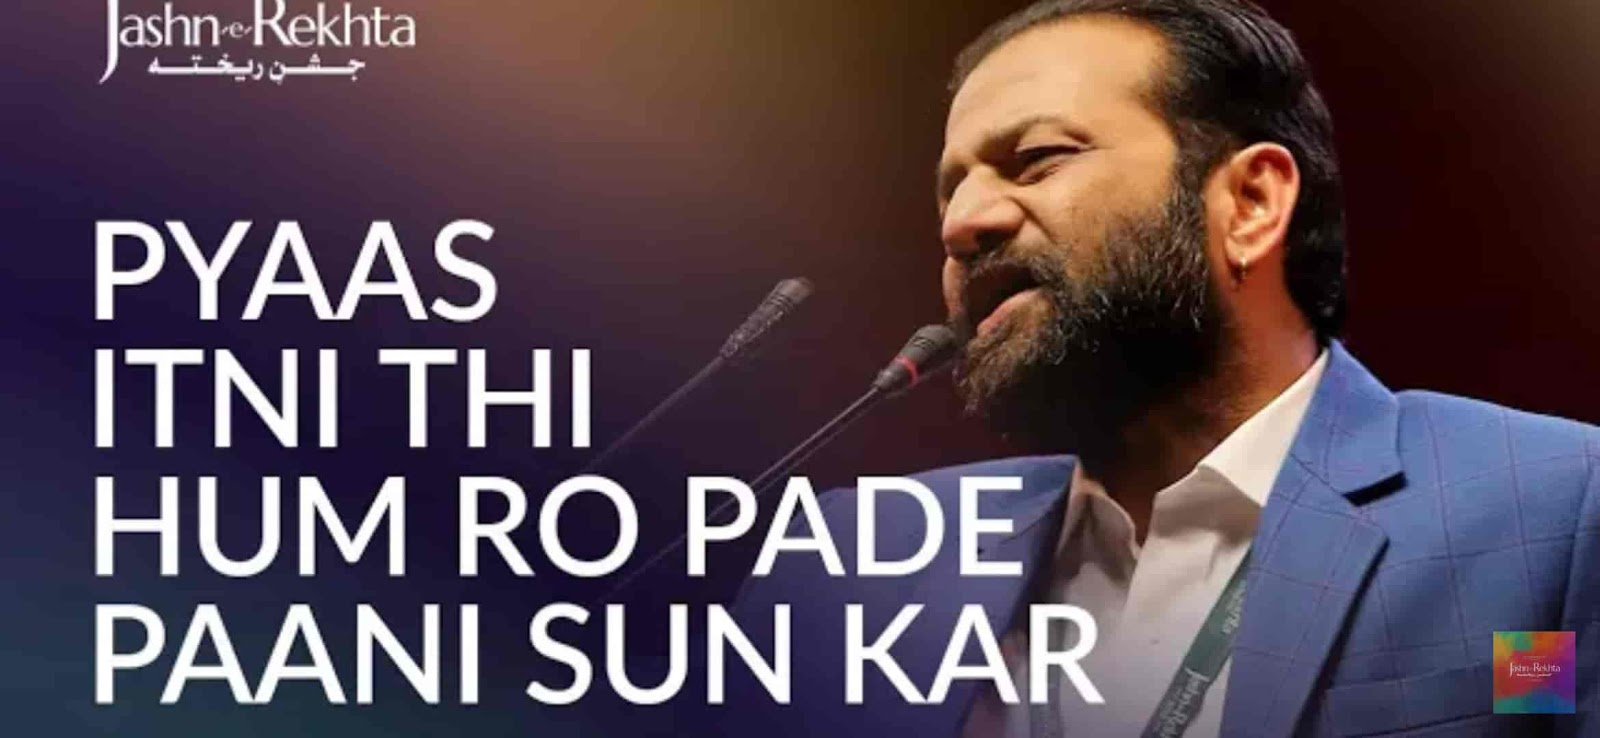 About This Shayari :- This beautiful Shayari 'Pyaas Itni Thi Hum Ro Pade Paani Sun Kar' for Jashn-e-Rekhta is performed by Legend Shayar Mukesh Alam and also written by him which is very beautiful and delightful.